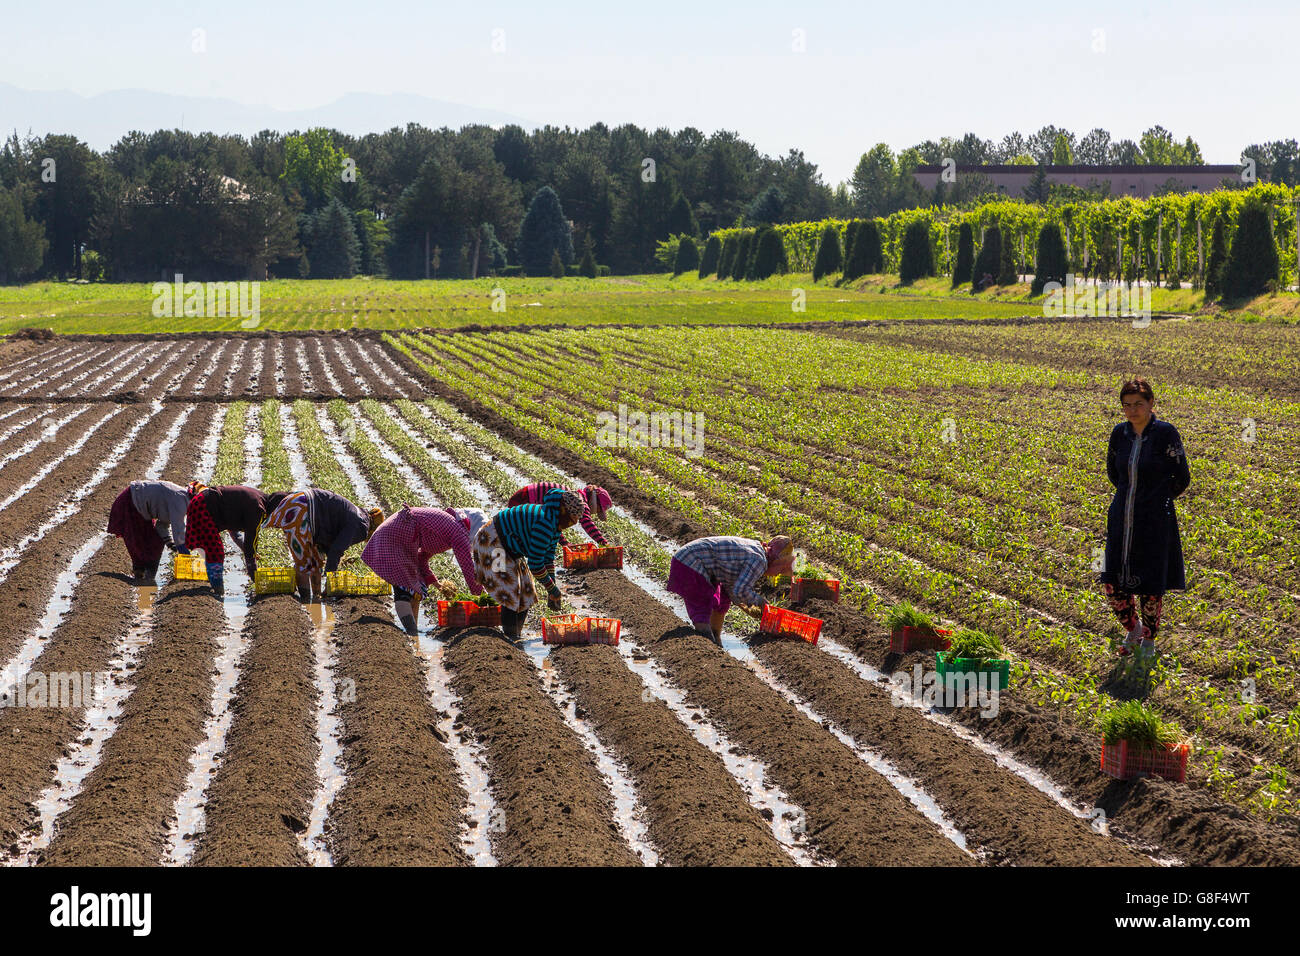 Women working in the field and planting onions. - Stock Image